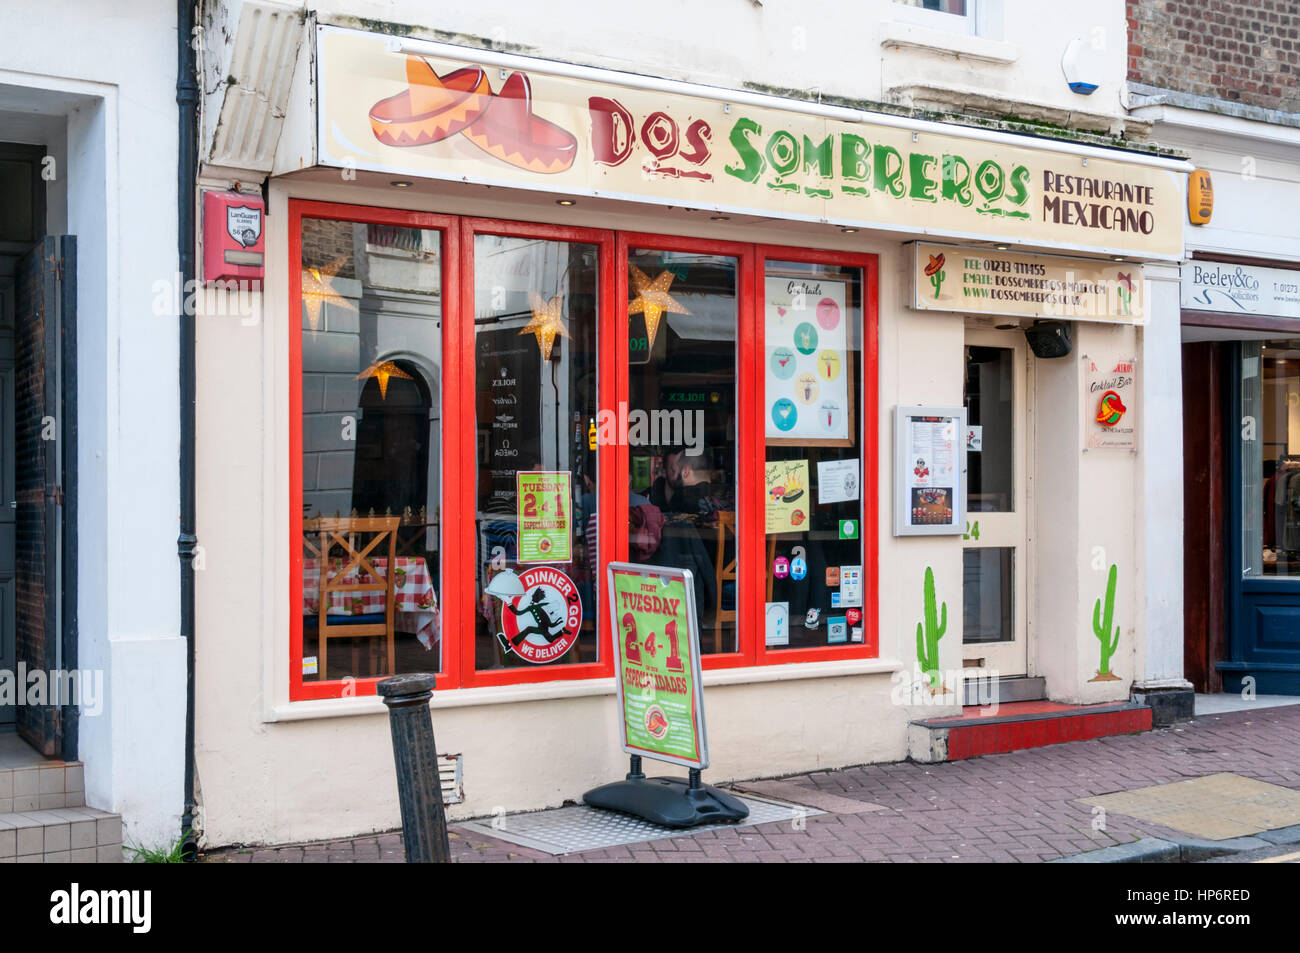 Mexican Restaurant Exterior High Resolution Stock Photography And Images Alamy